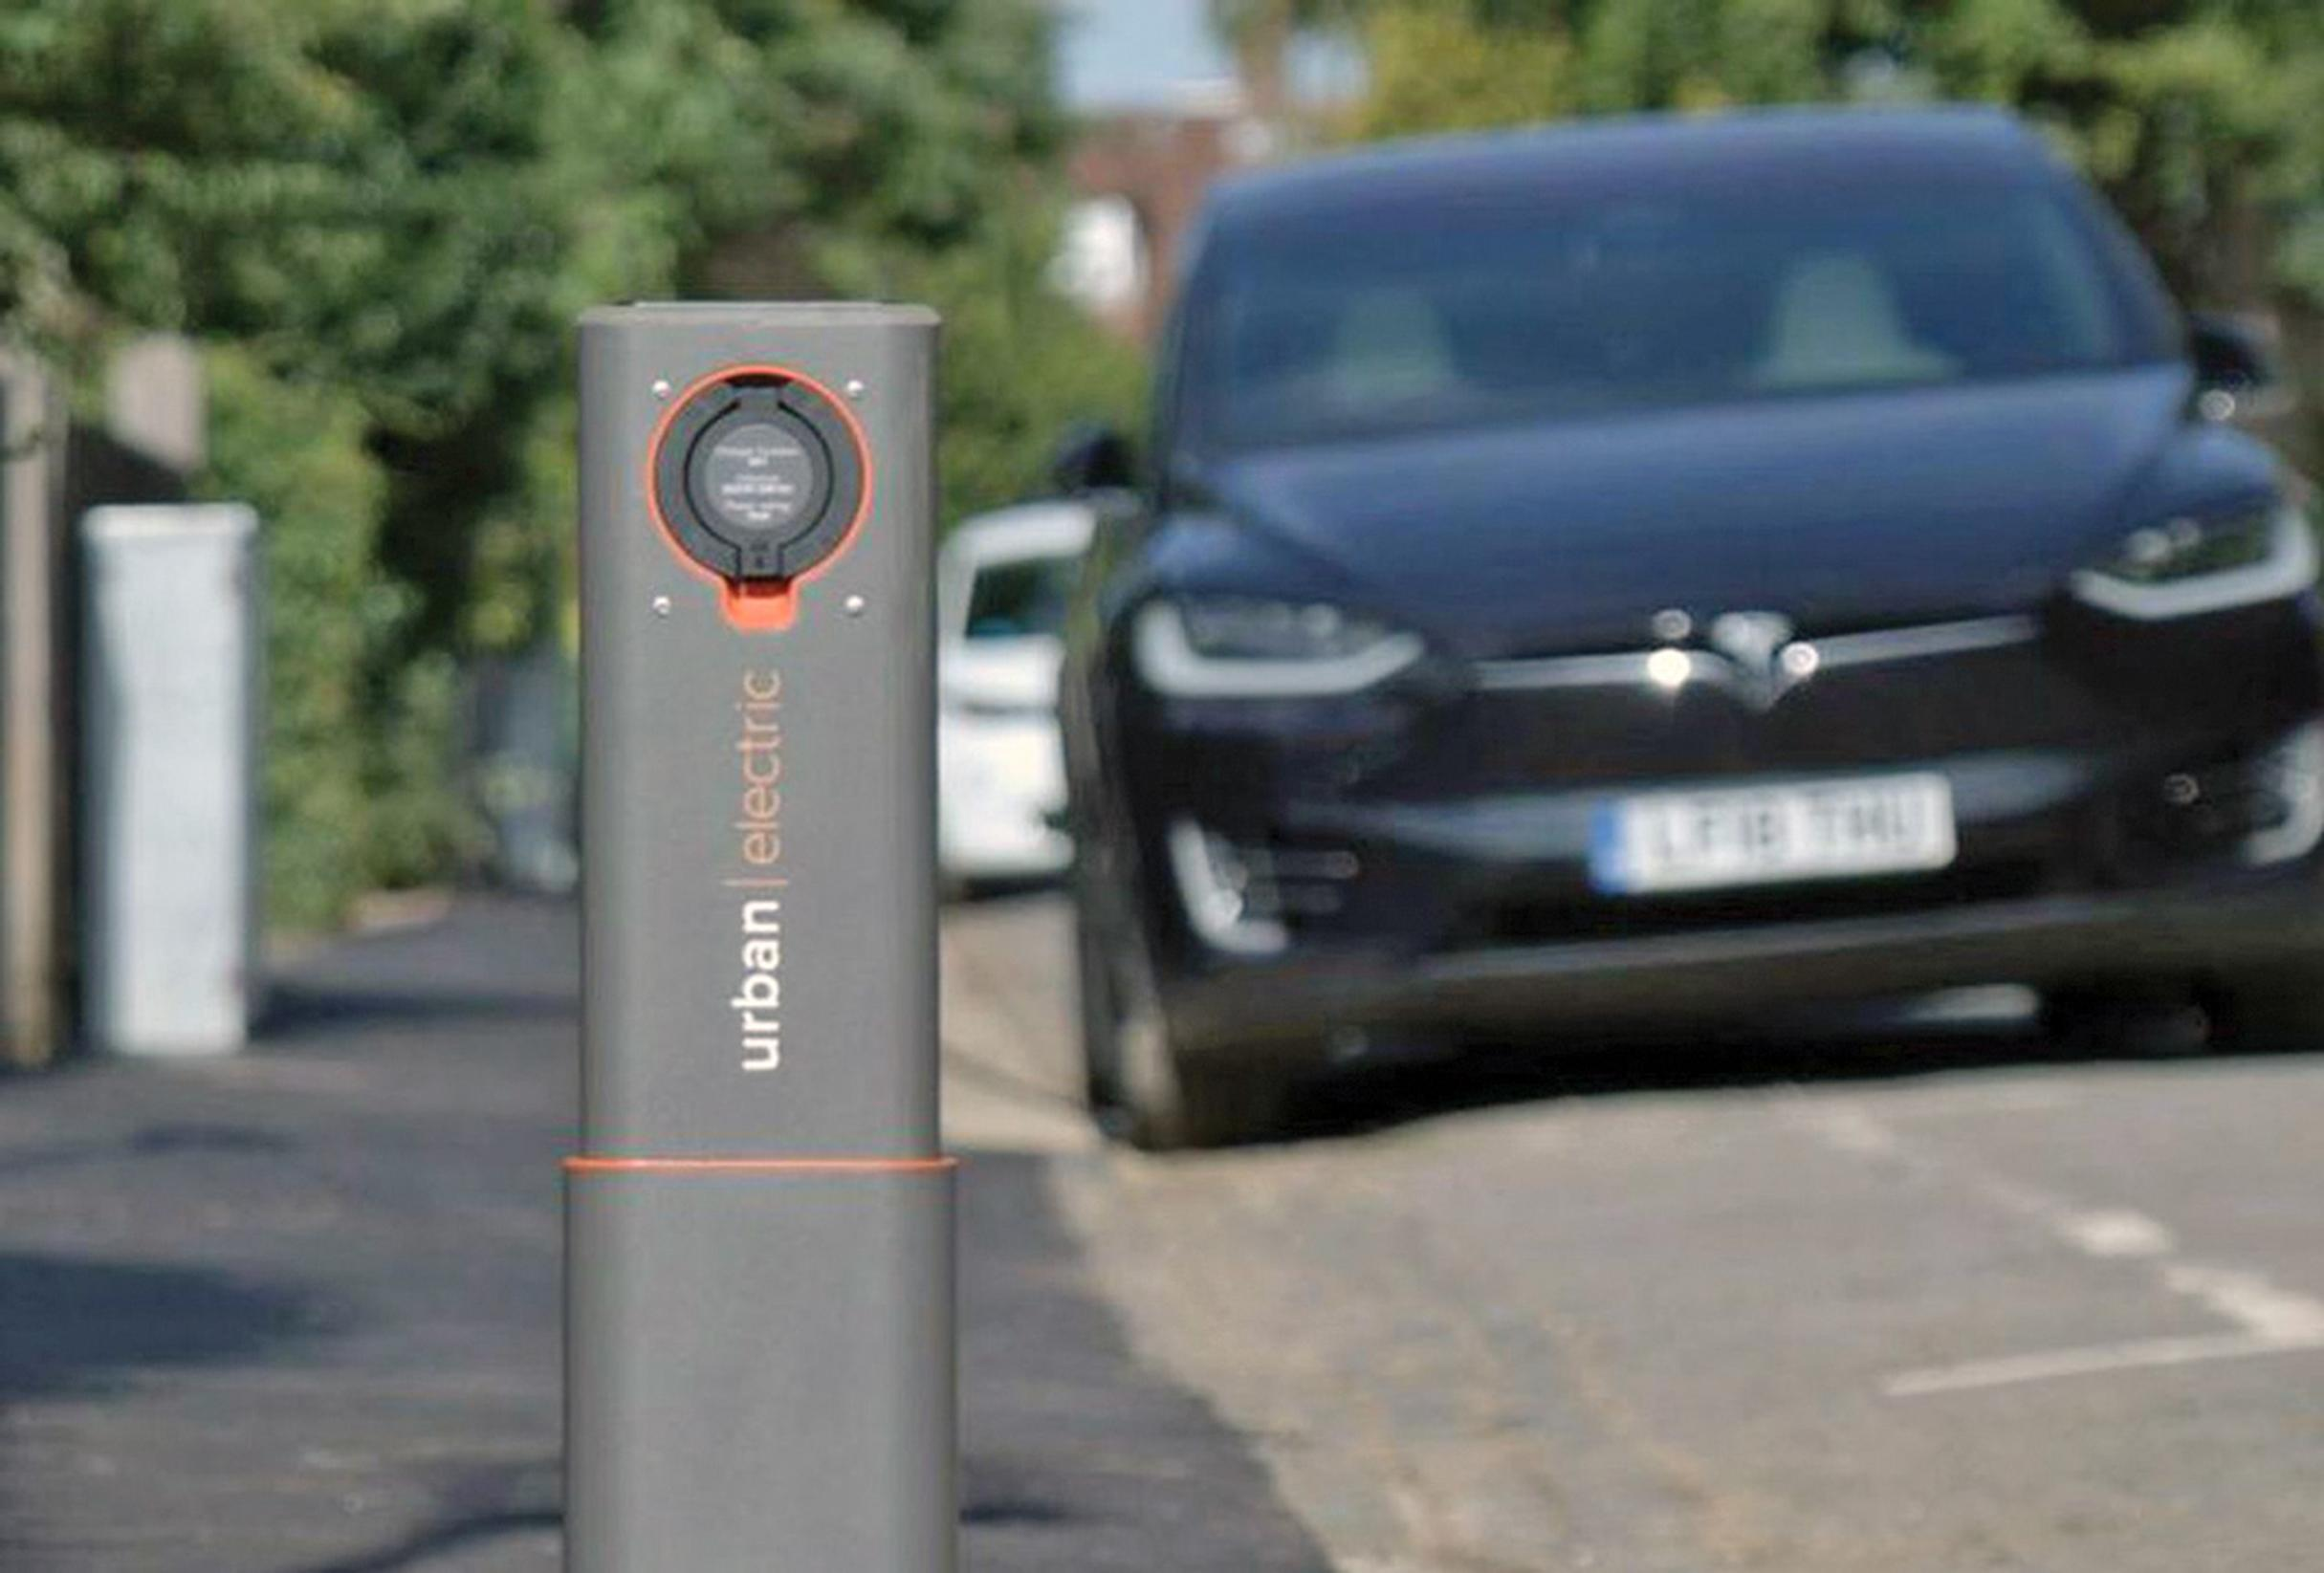 Pop-up EV charging points trialled in Oxford